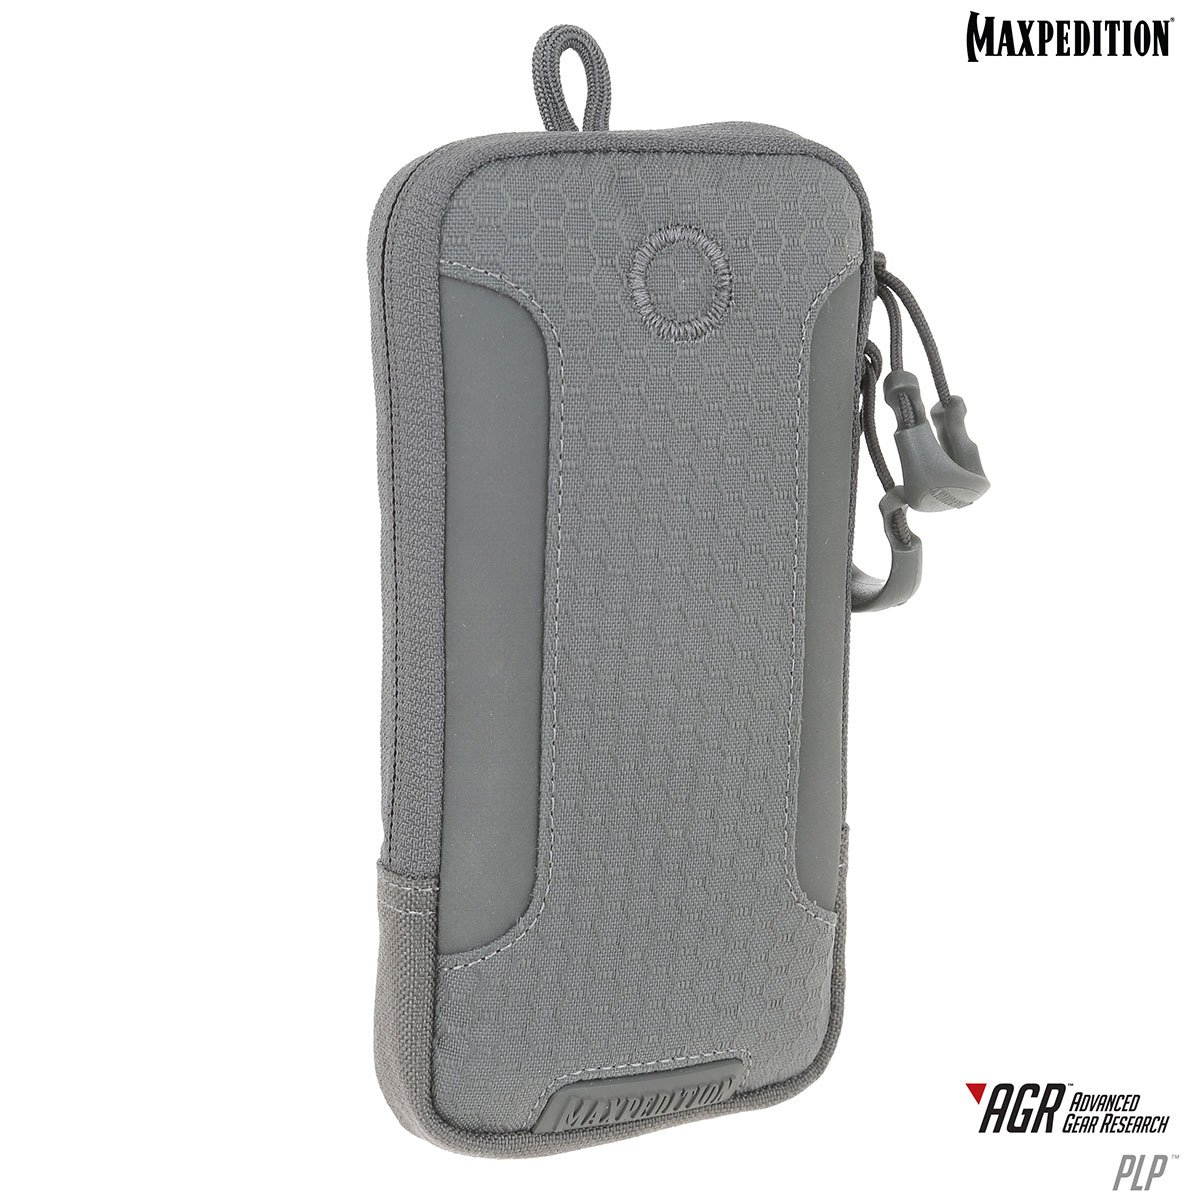 Maxpedition PLP iPhone 7 Plus Pouch